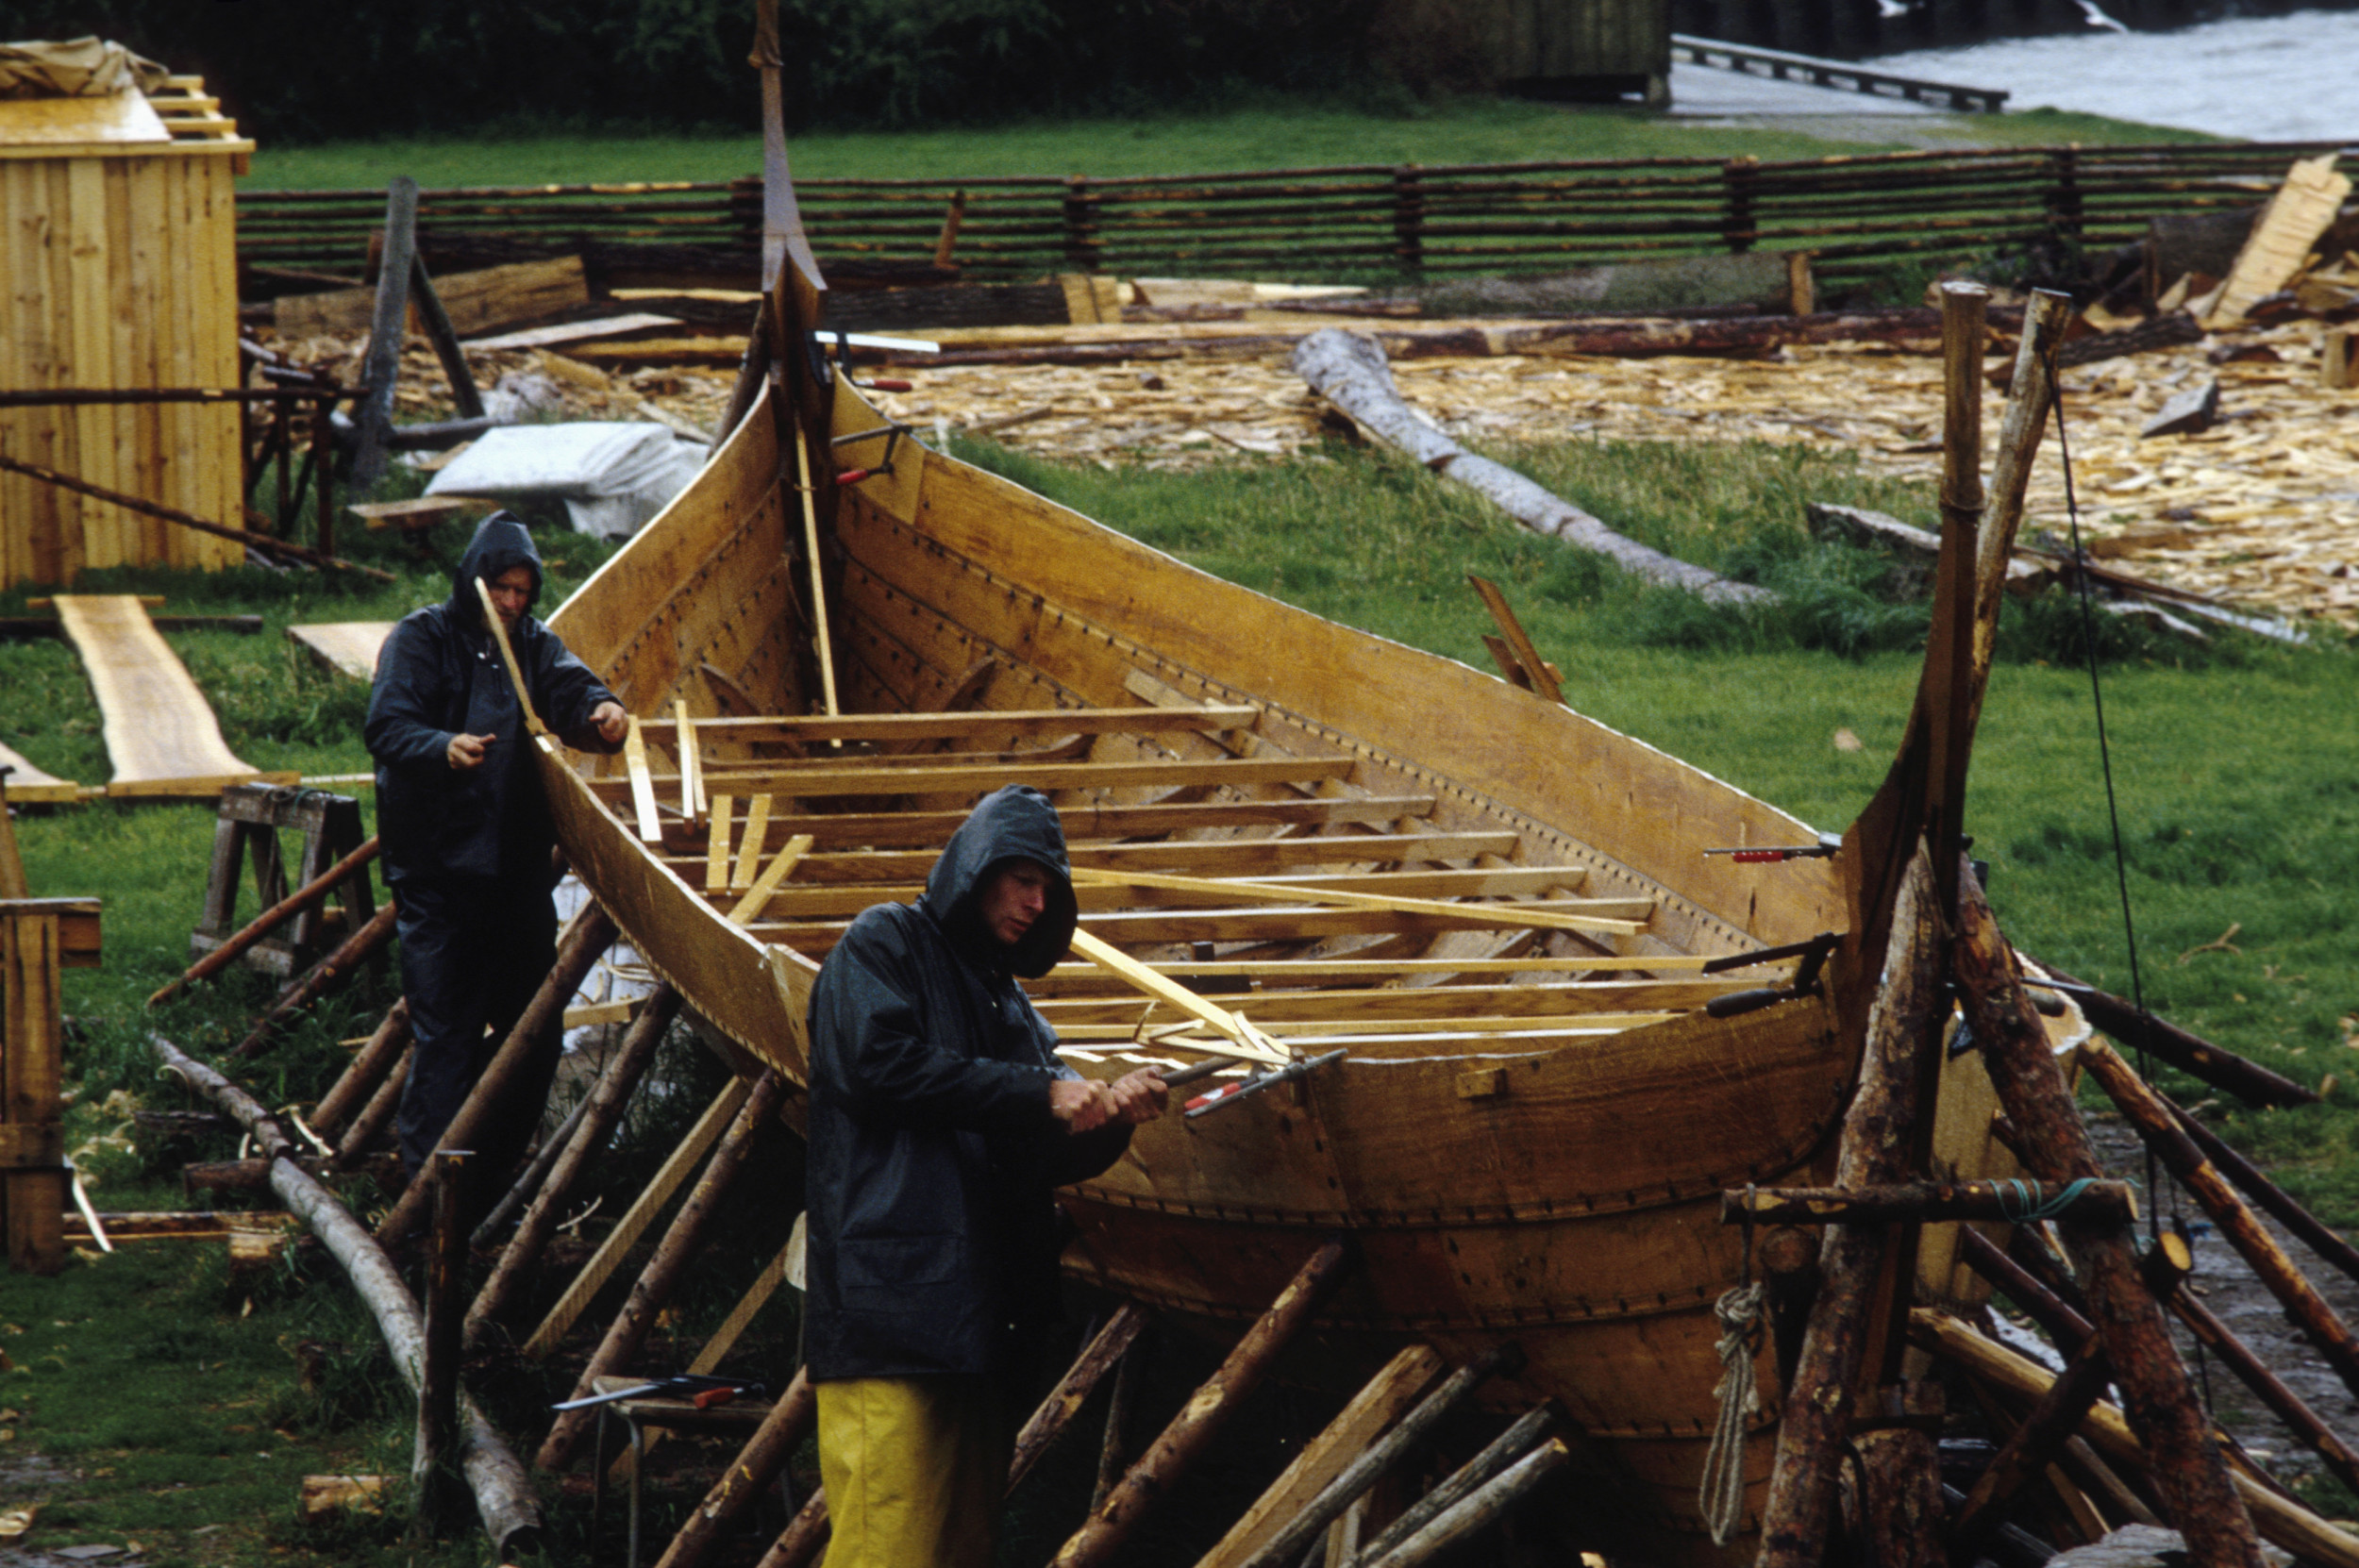 Viking Burial Ships Uncovered in 'Sensational